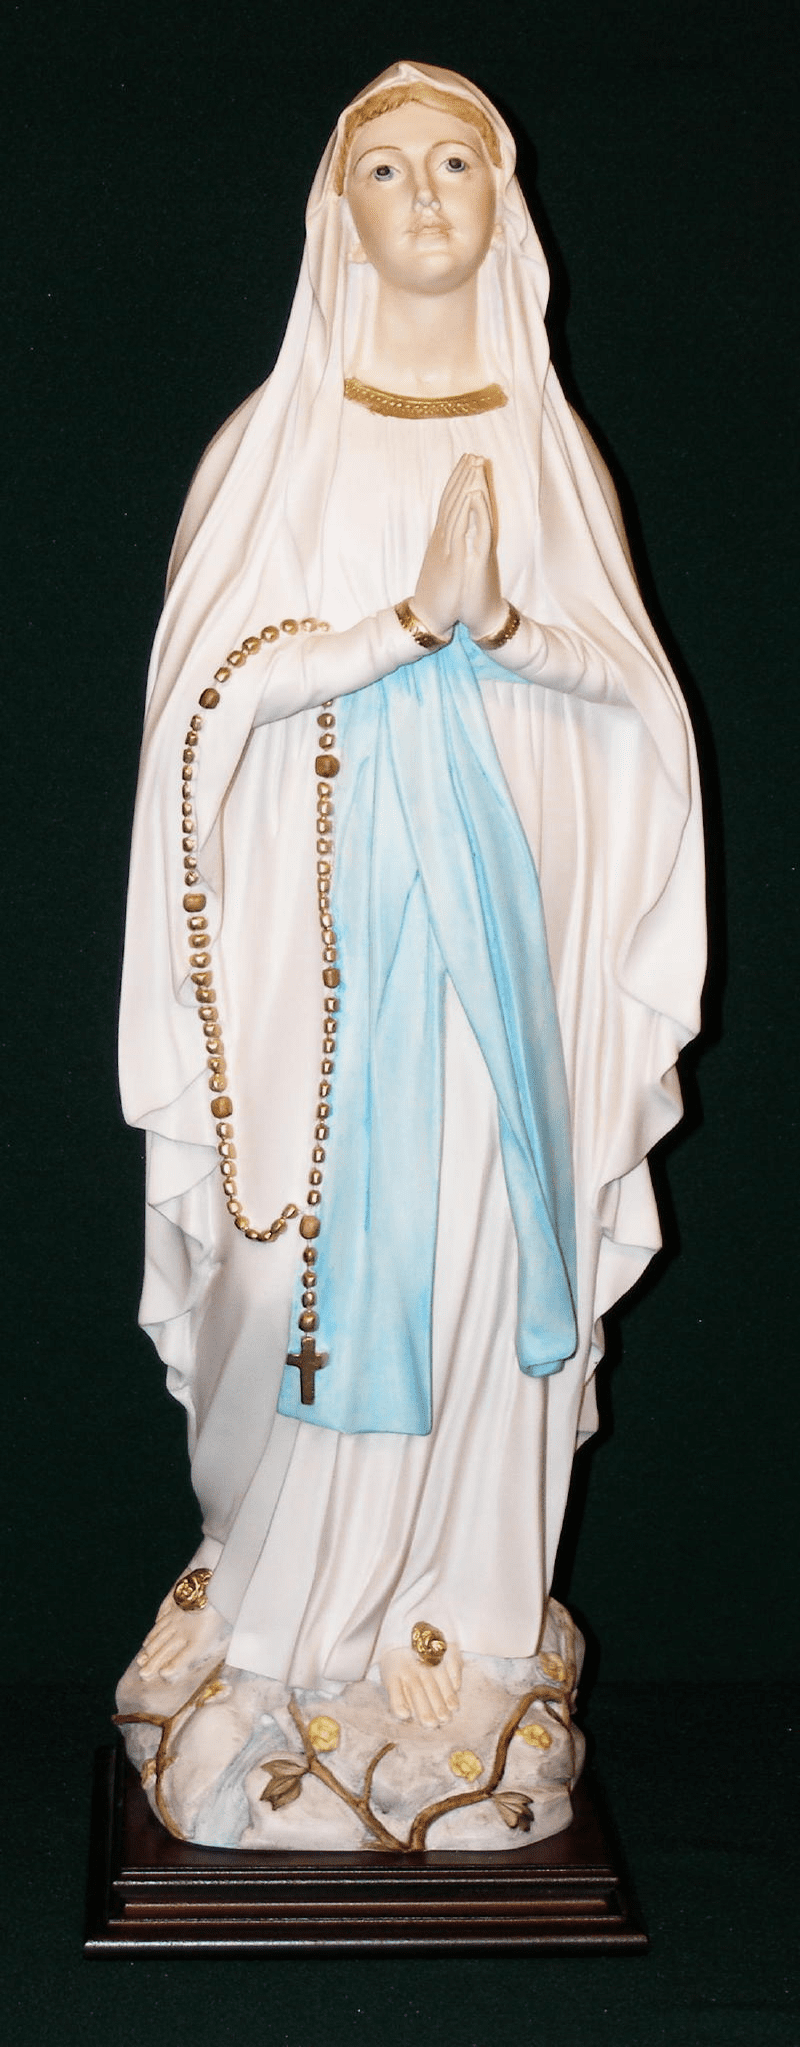 Our Lady of Lourdes with Rosary Alabaster Catholic Statue